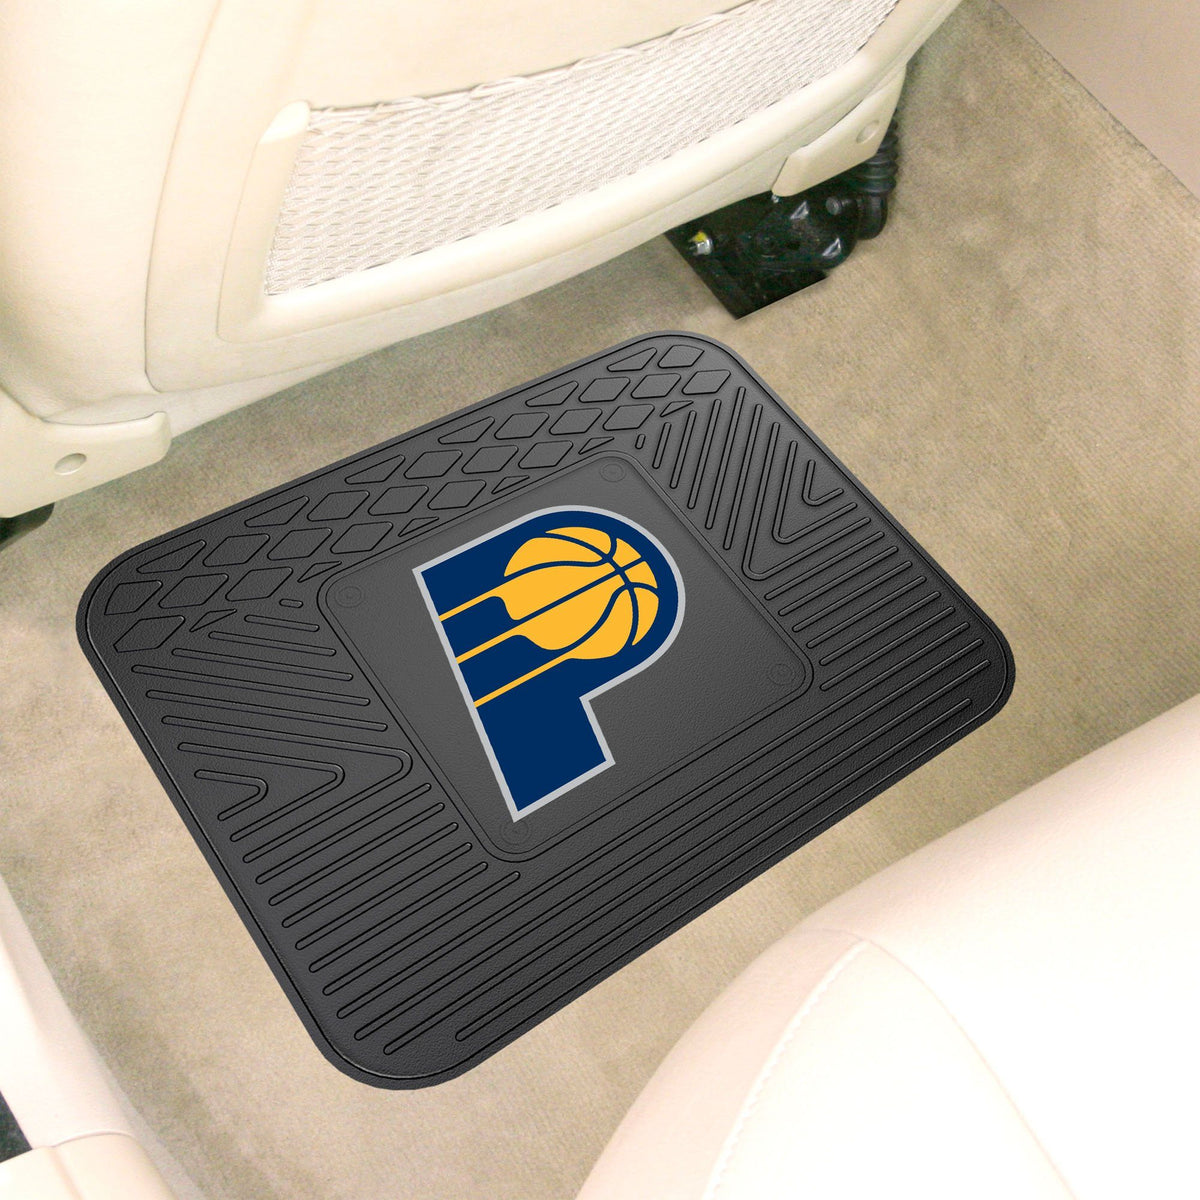 NBA - Utility Mat NBA Mats, Rear Car Mats, Utility Mat, NBA, Auto Fan Mats Indiana Pacers